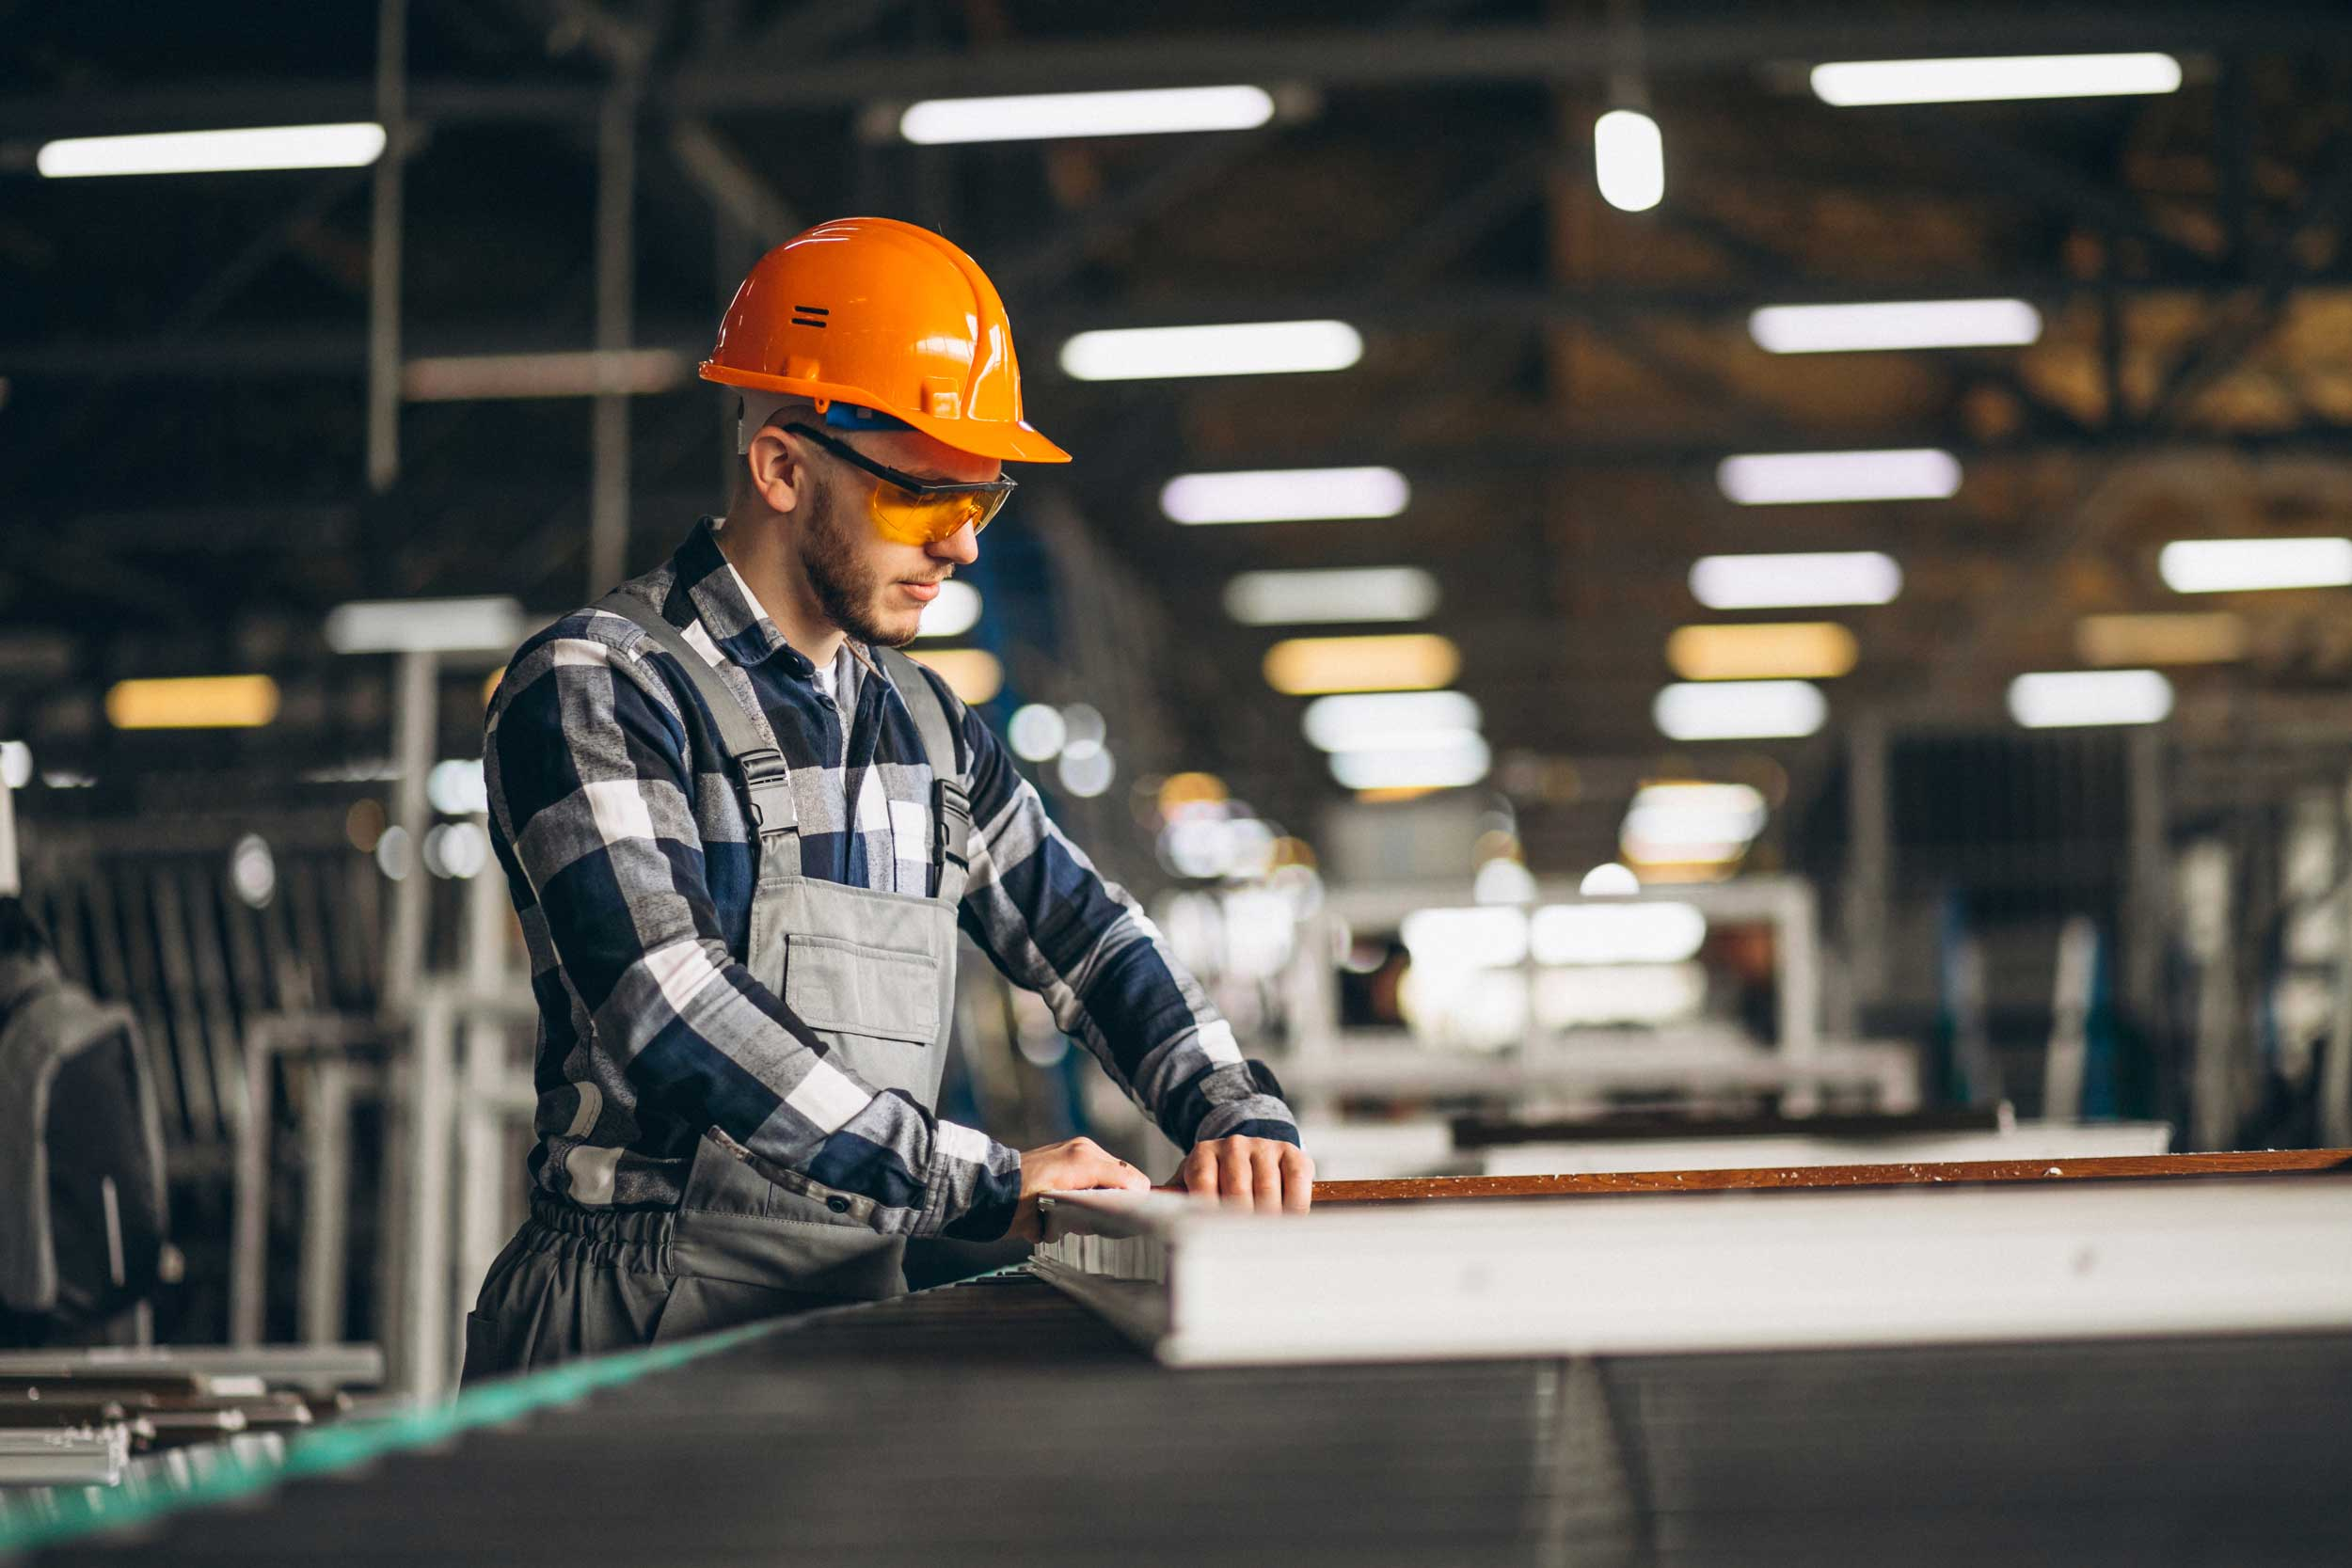 The future of health and safety in the workplace